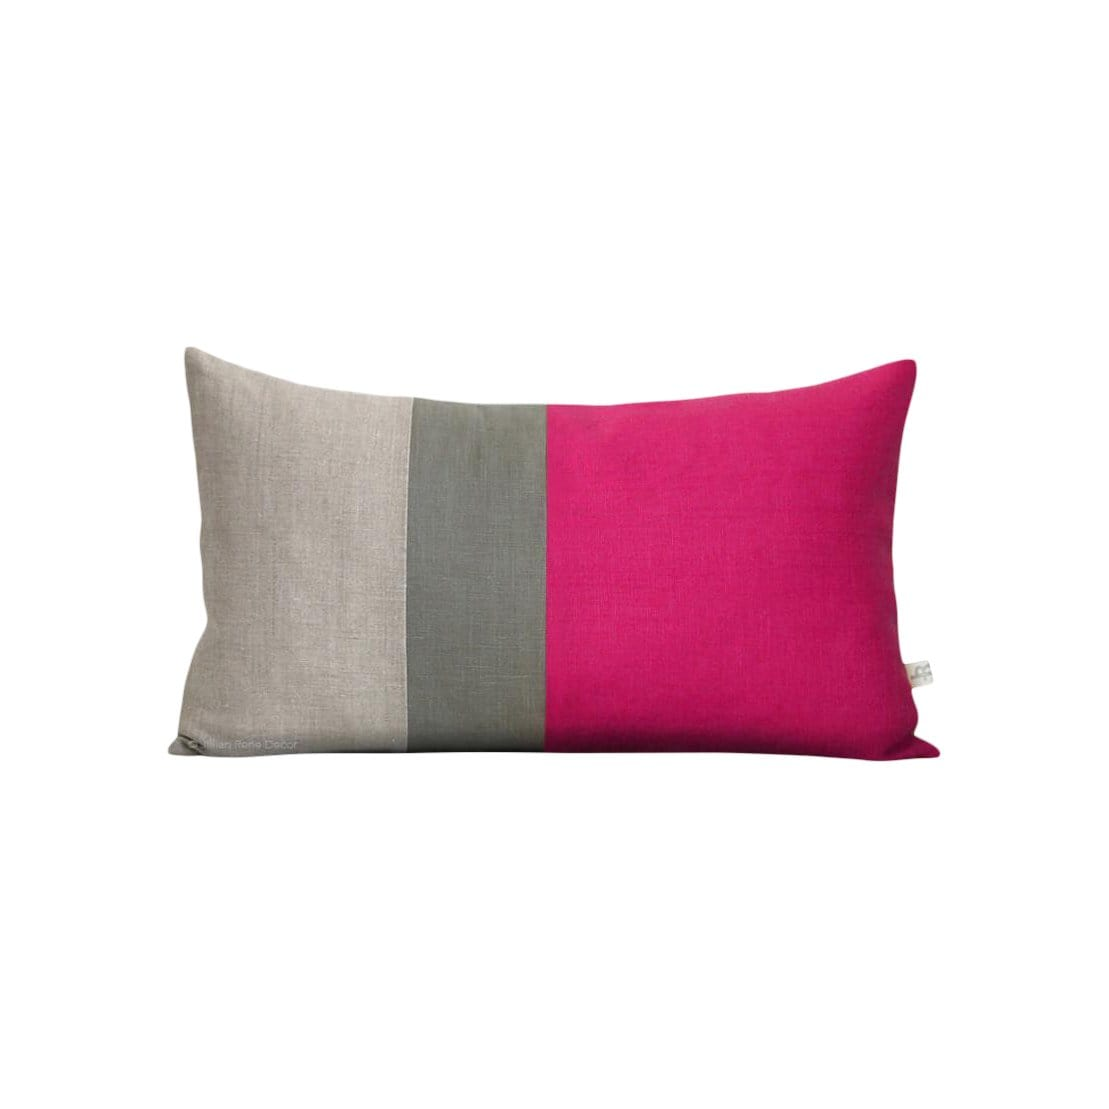 Jillian Rene Decor Cushions + Throws Colorblock Hot Pink, Grey + Natural Pillow